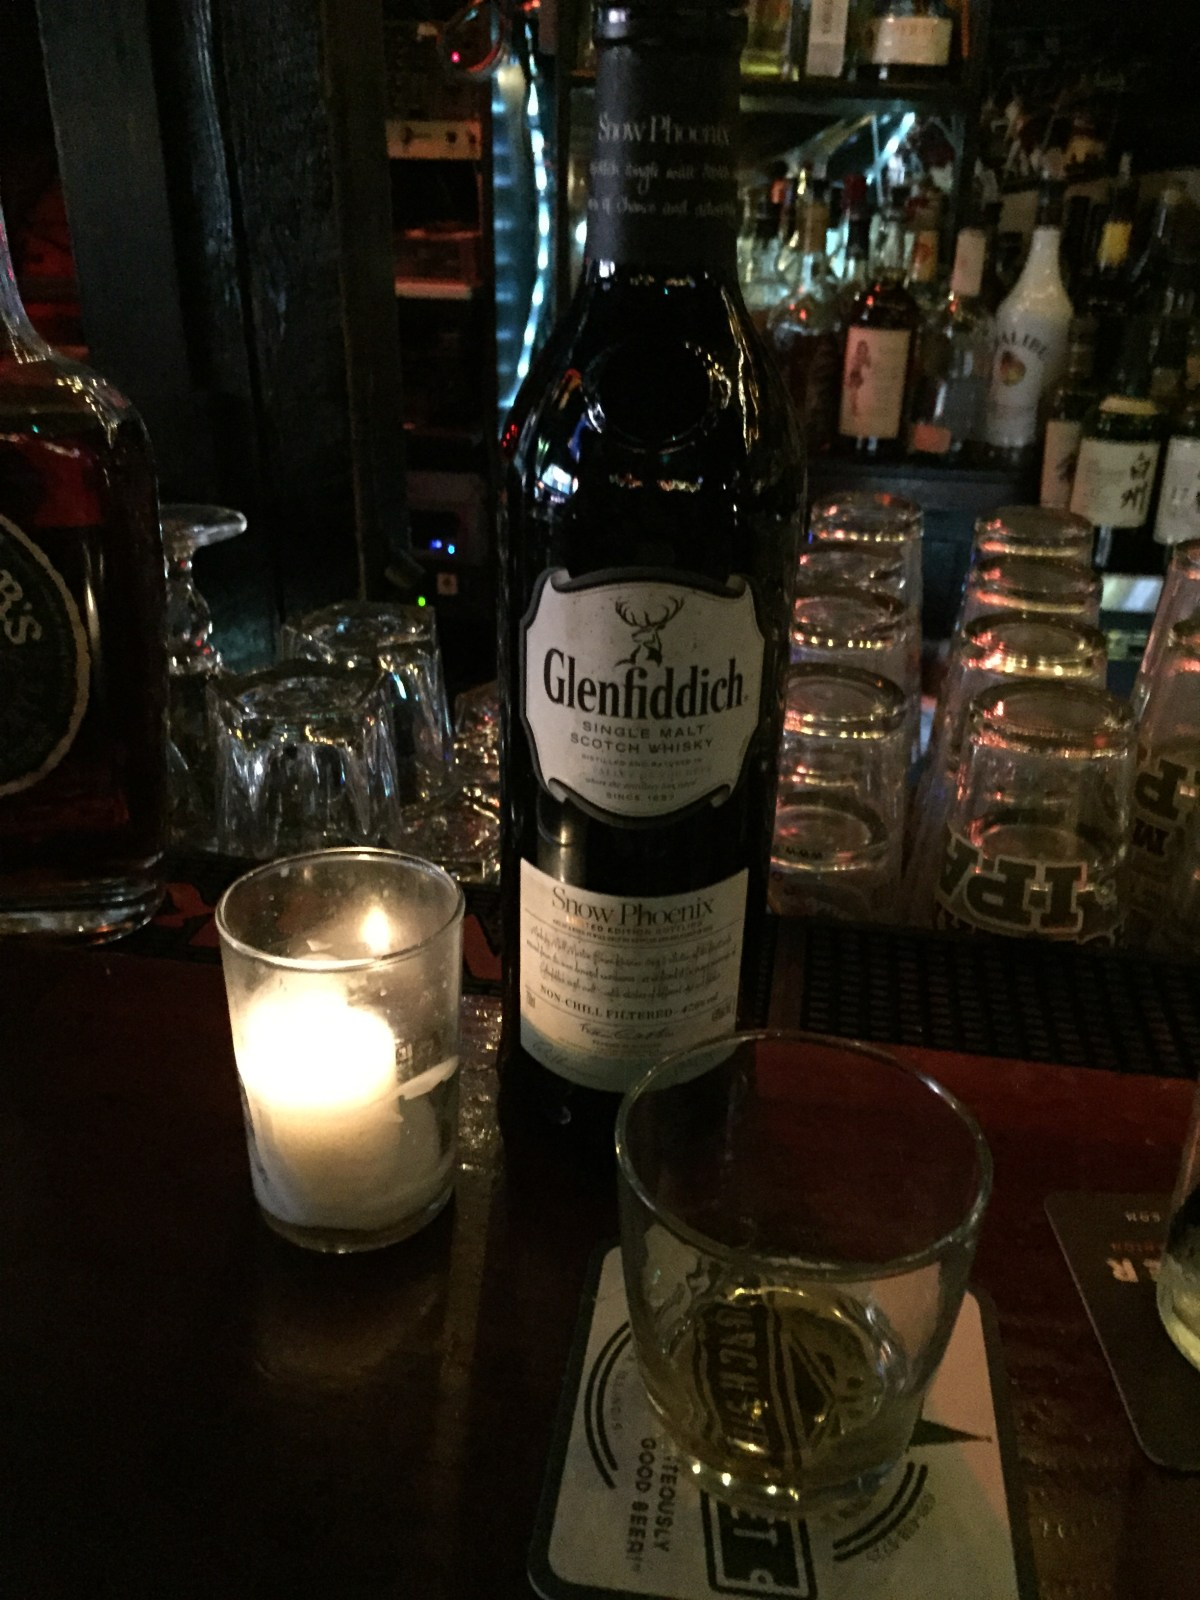 Glenfiddich Snow Phoenix Review